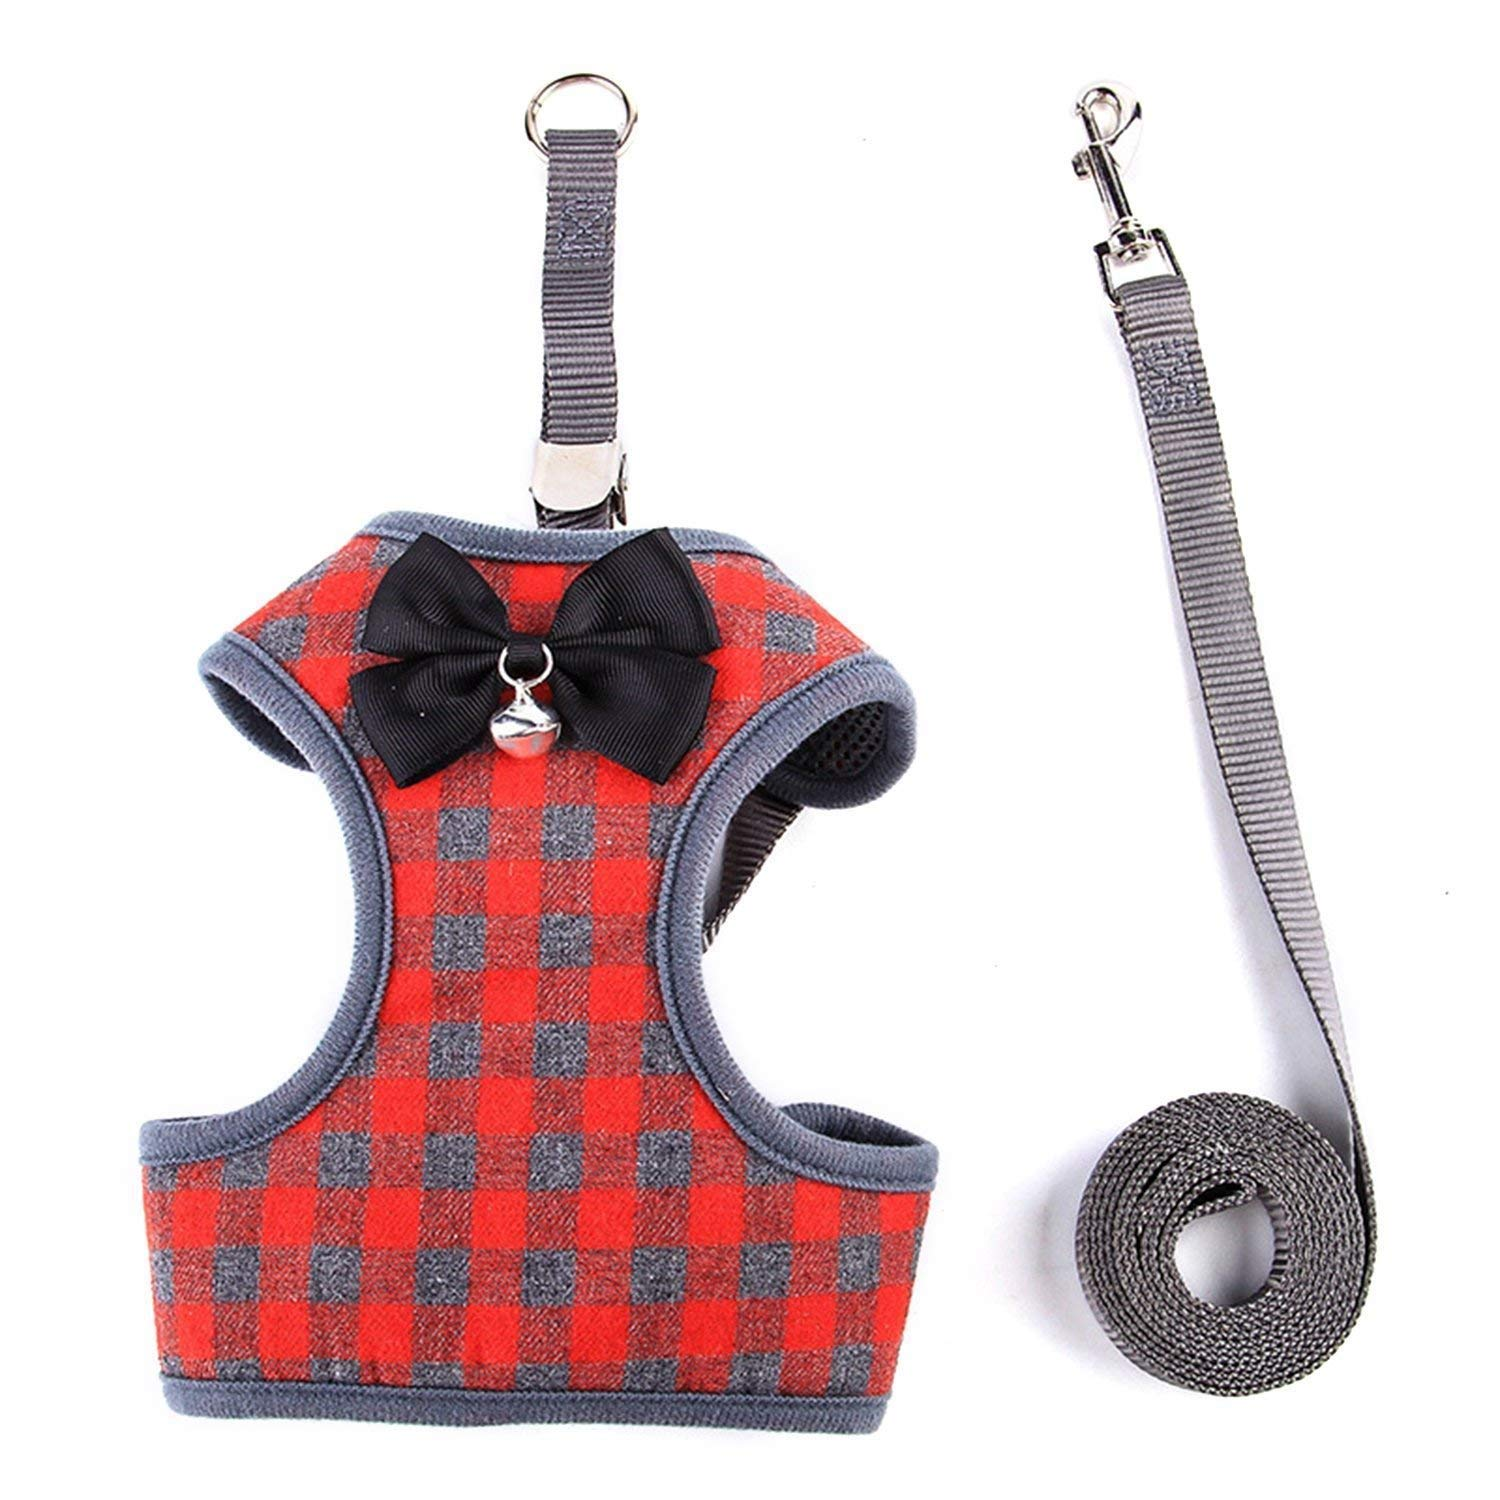 RYPET Small Dog Harness and Leash Set - No Pull Pet Harness with Soft Mesh Nylon Vest for Small Dogs and Cats Red M by RYPET (Image #2)